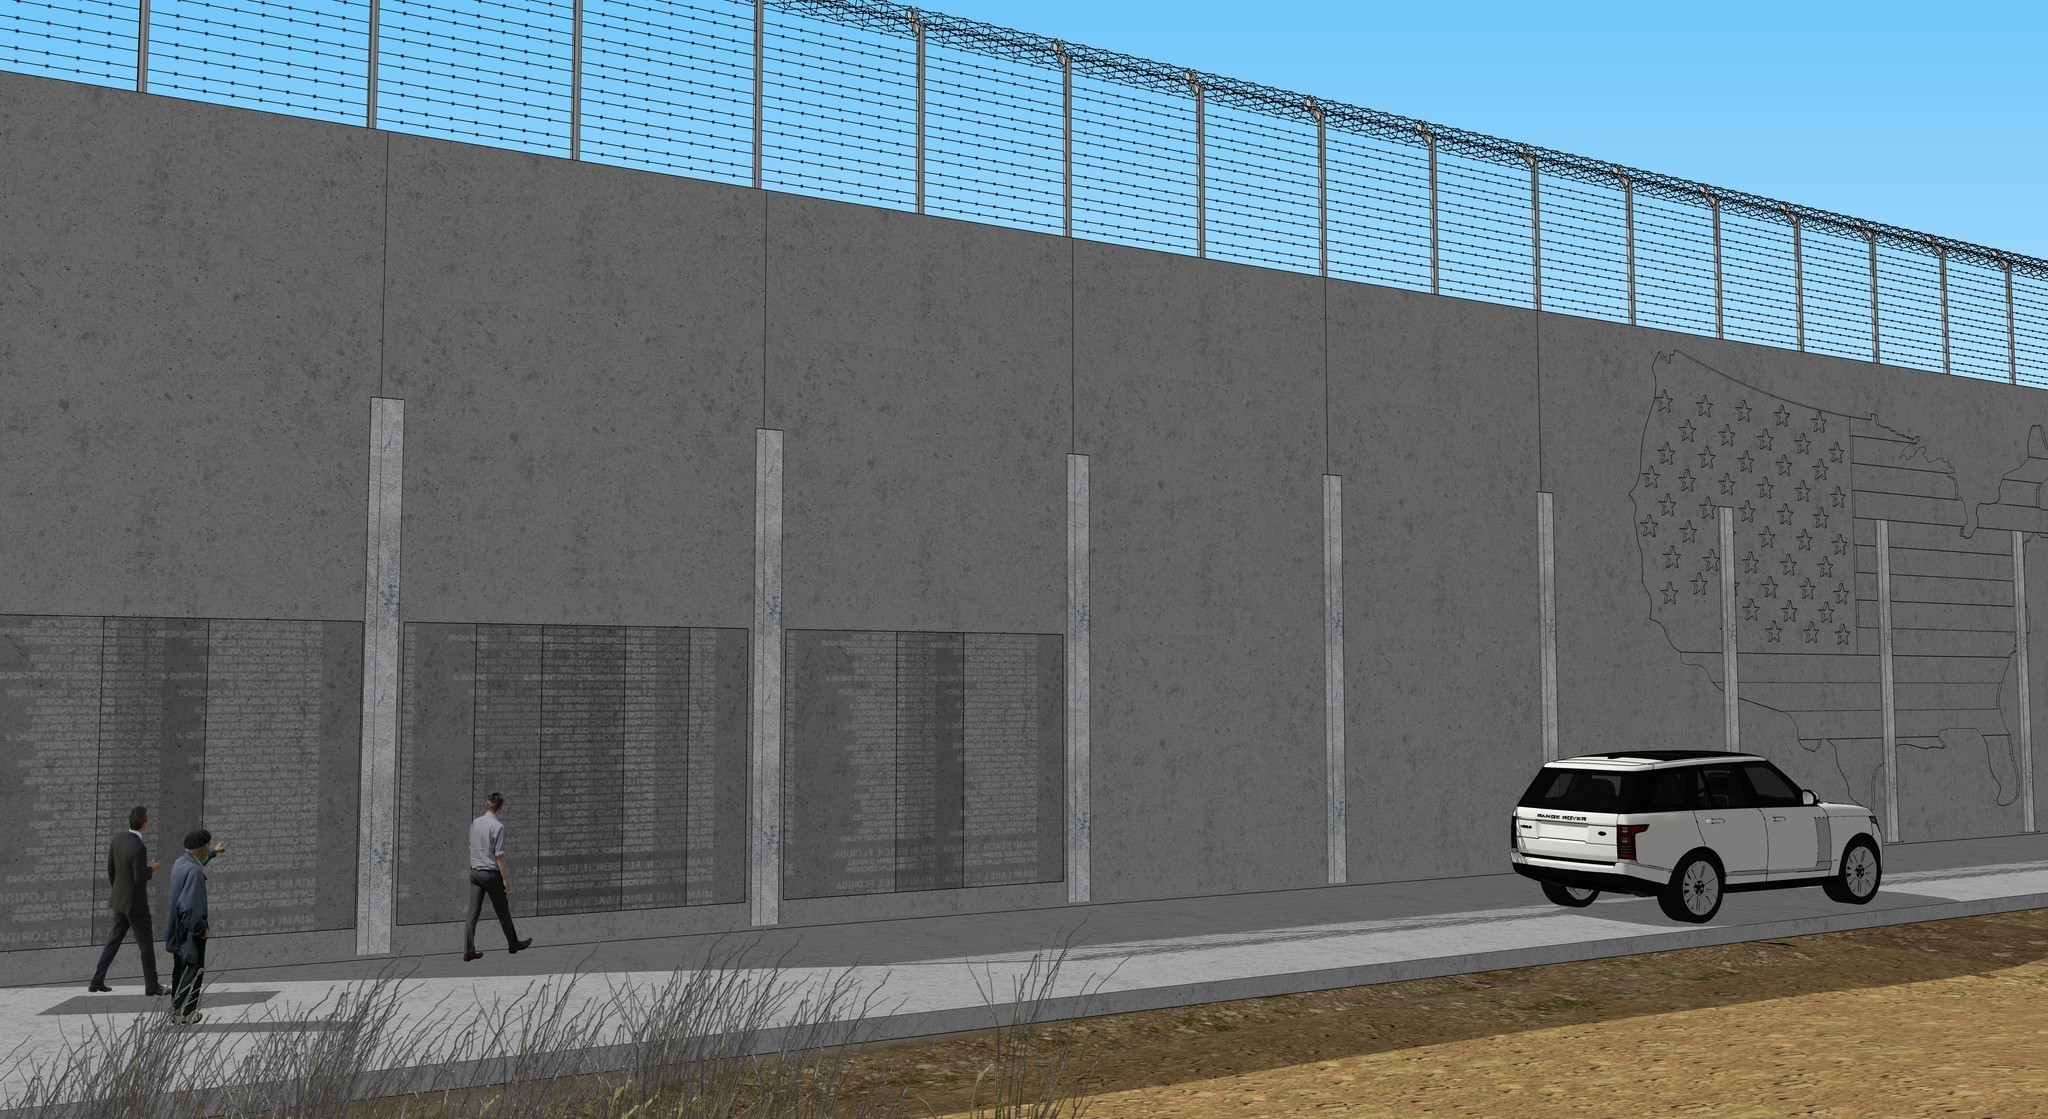 An artist's rendering of a potential new wall along the U.S. border with Mexico. (Los Angeles Times)